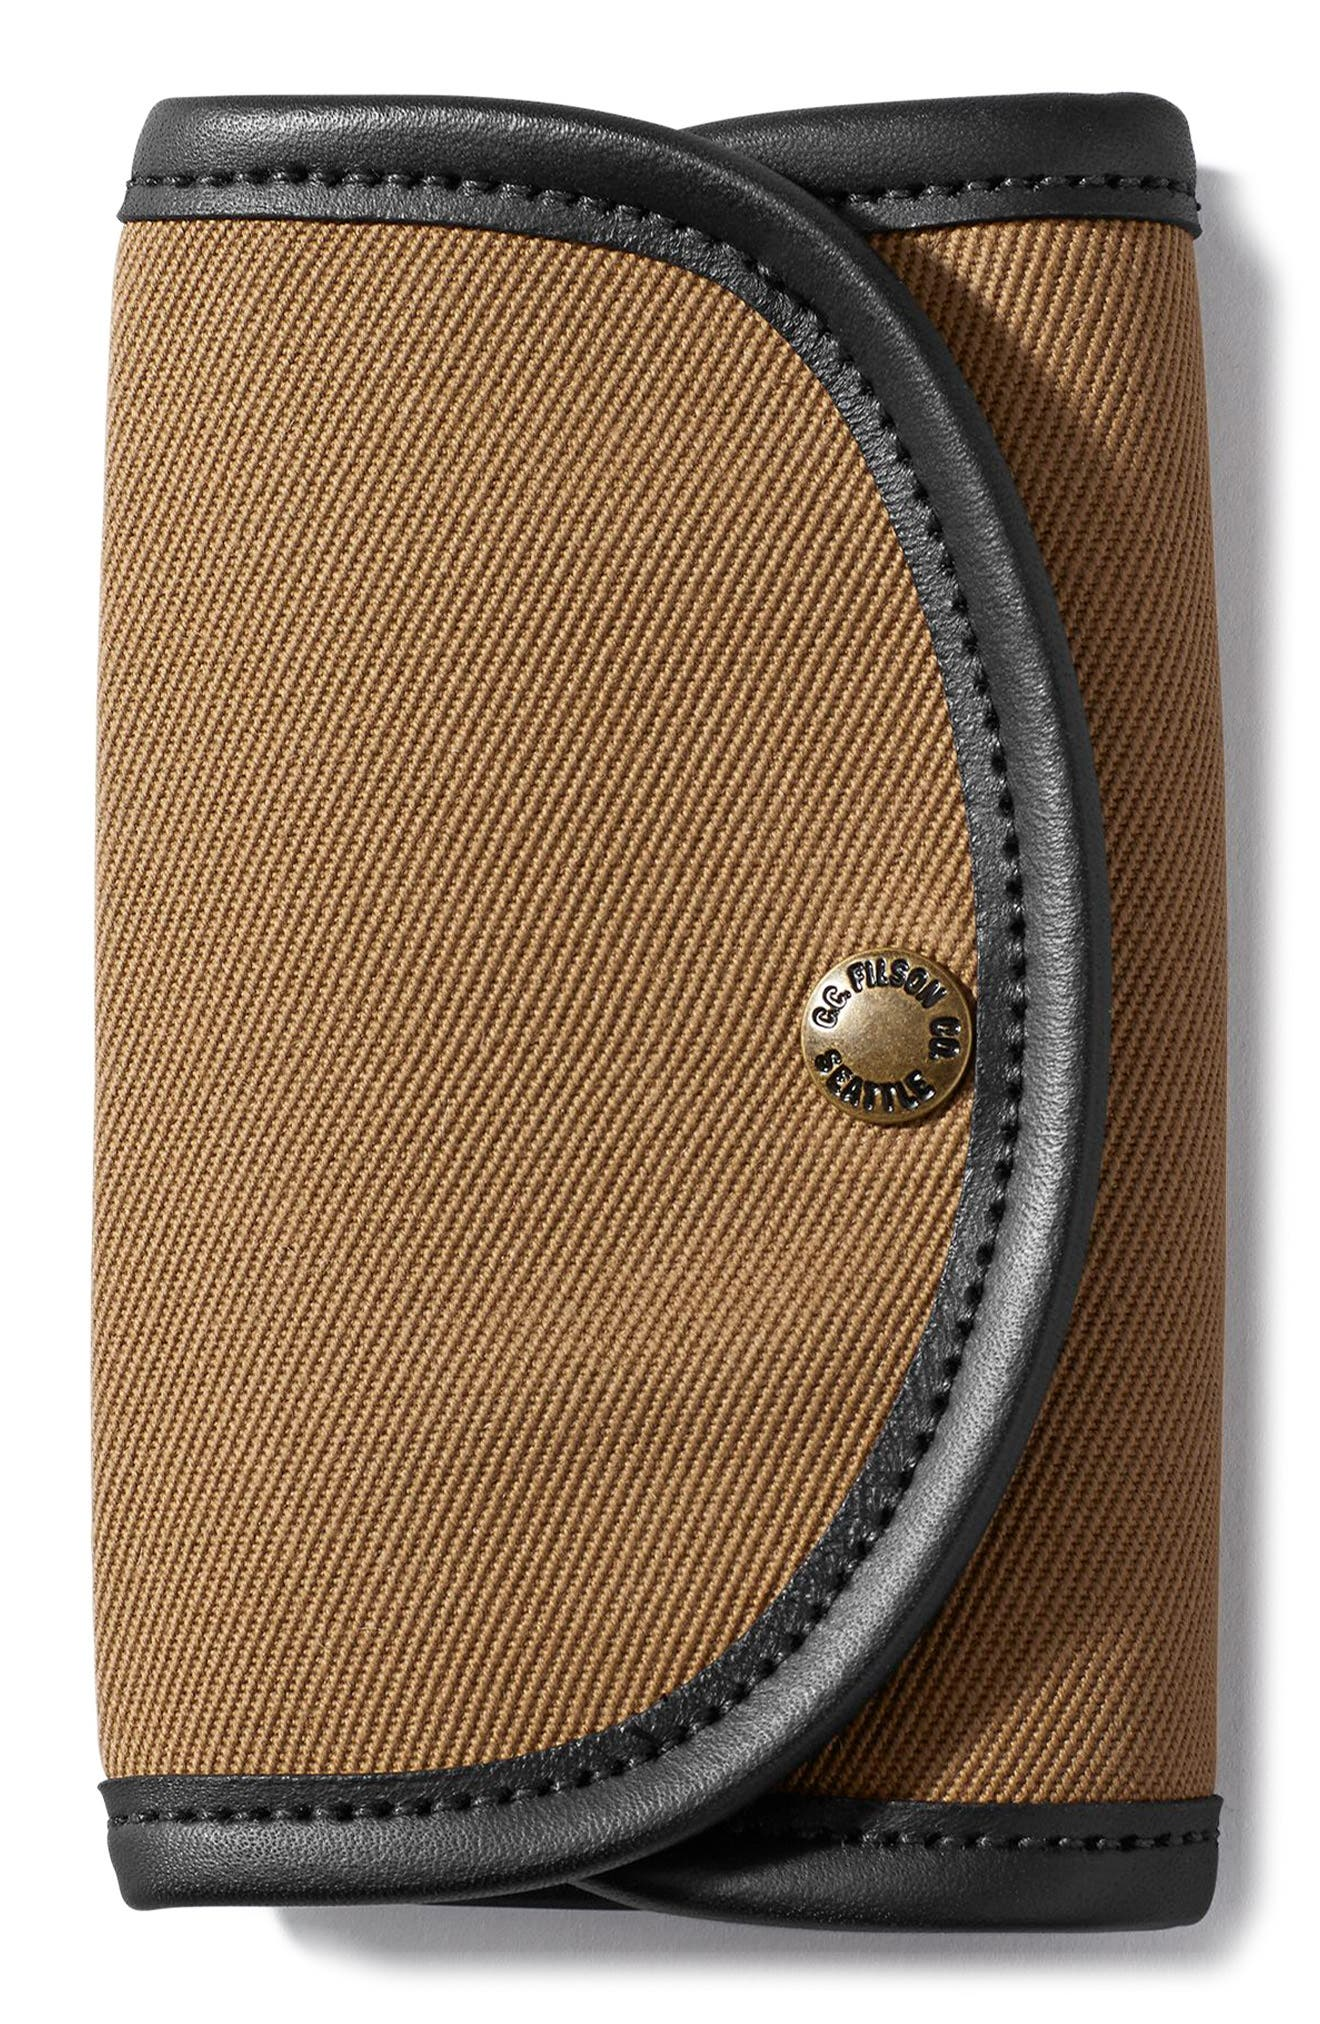 Fly Fishing Wallet With Genuine Shearling